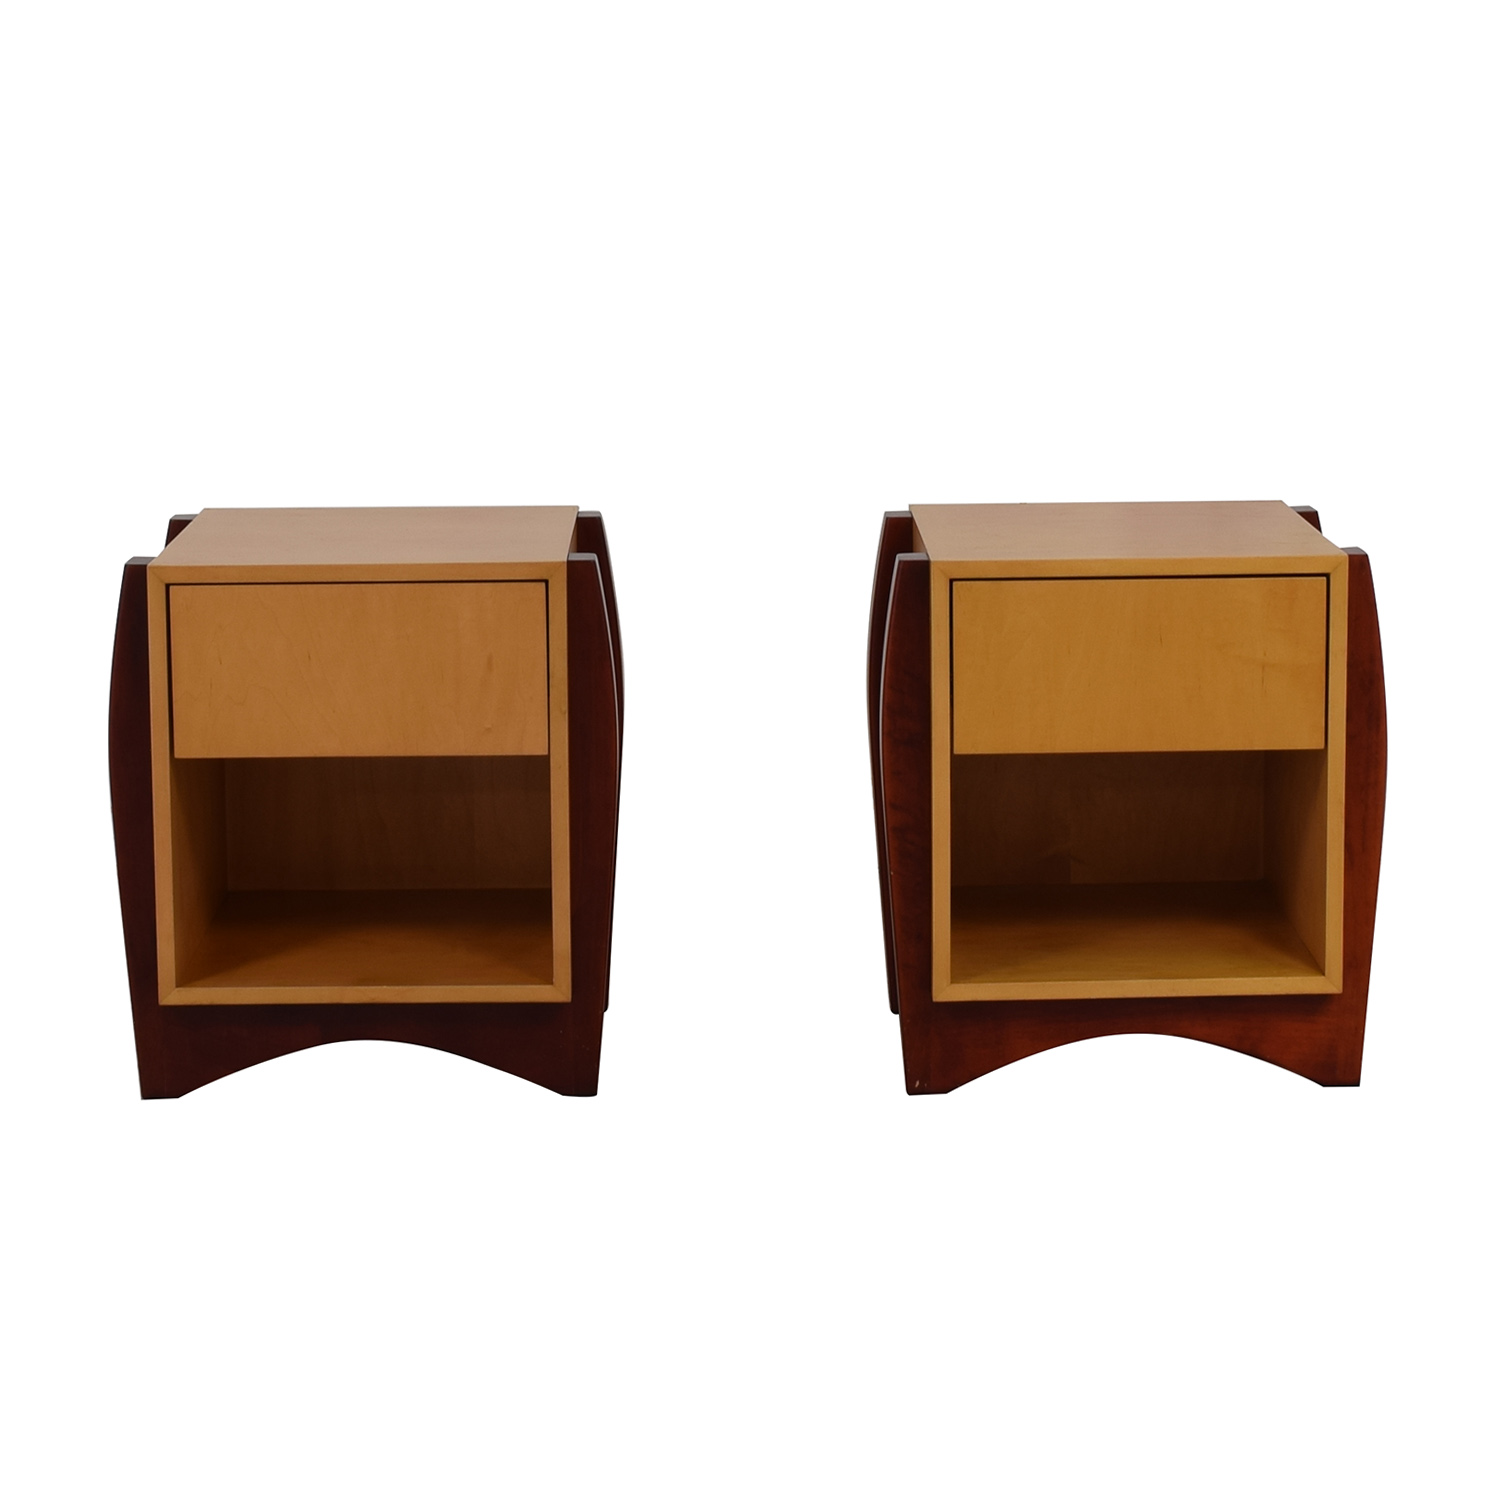 Dialogica Dialogica Nightstands End Tables